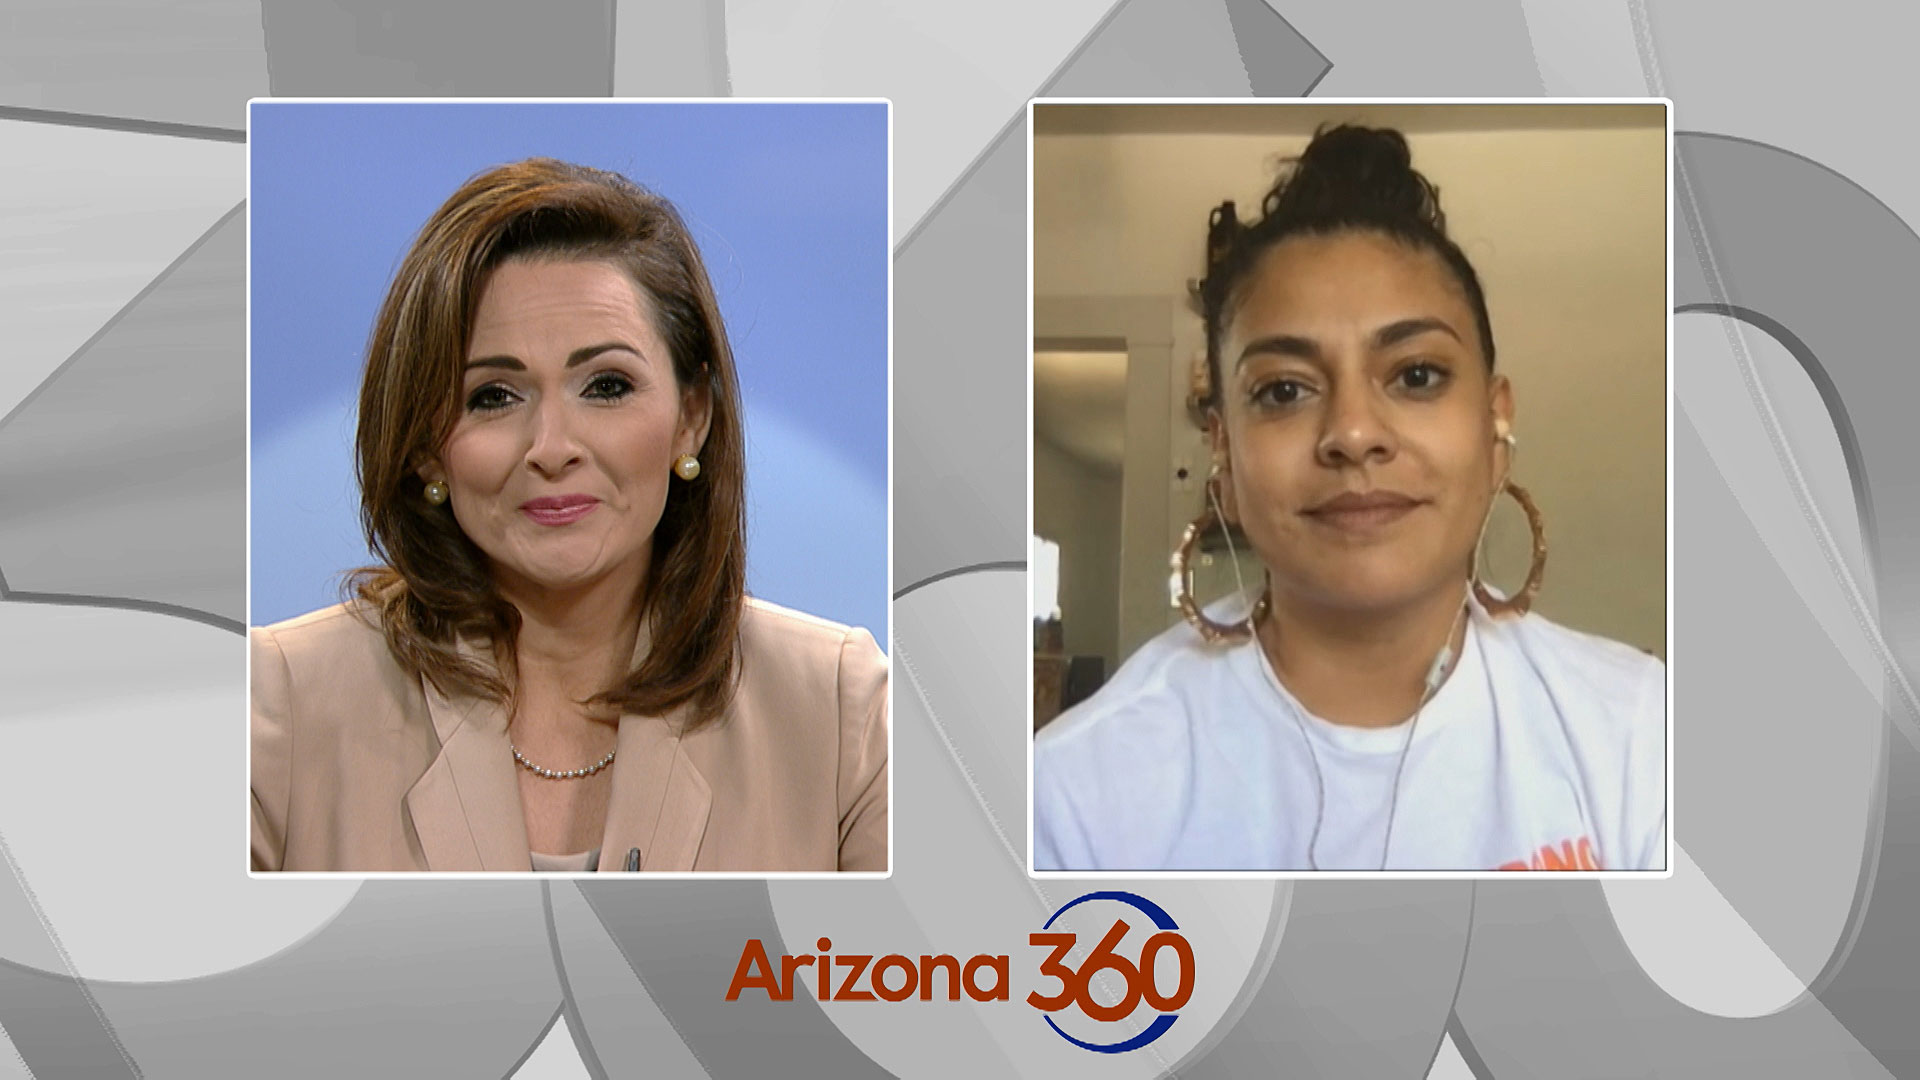 Tucson City Council member Lane Santa Cruz during a Zoom interview with Arizona 360 host Lorraine Rivera on July 22, 2020.